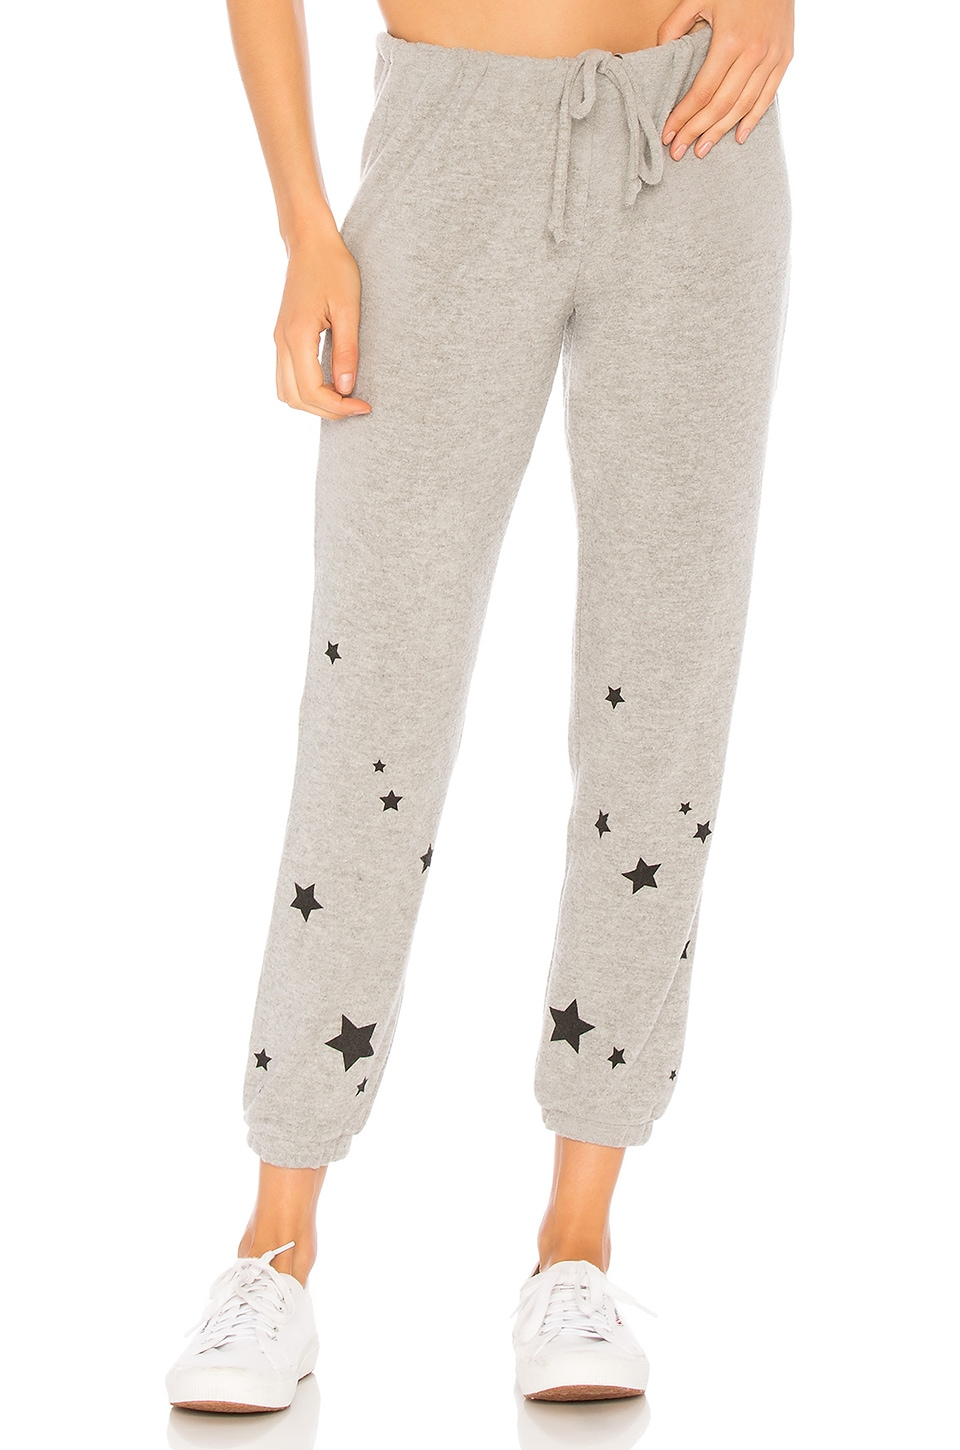 Starry Pant